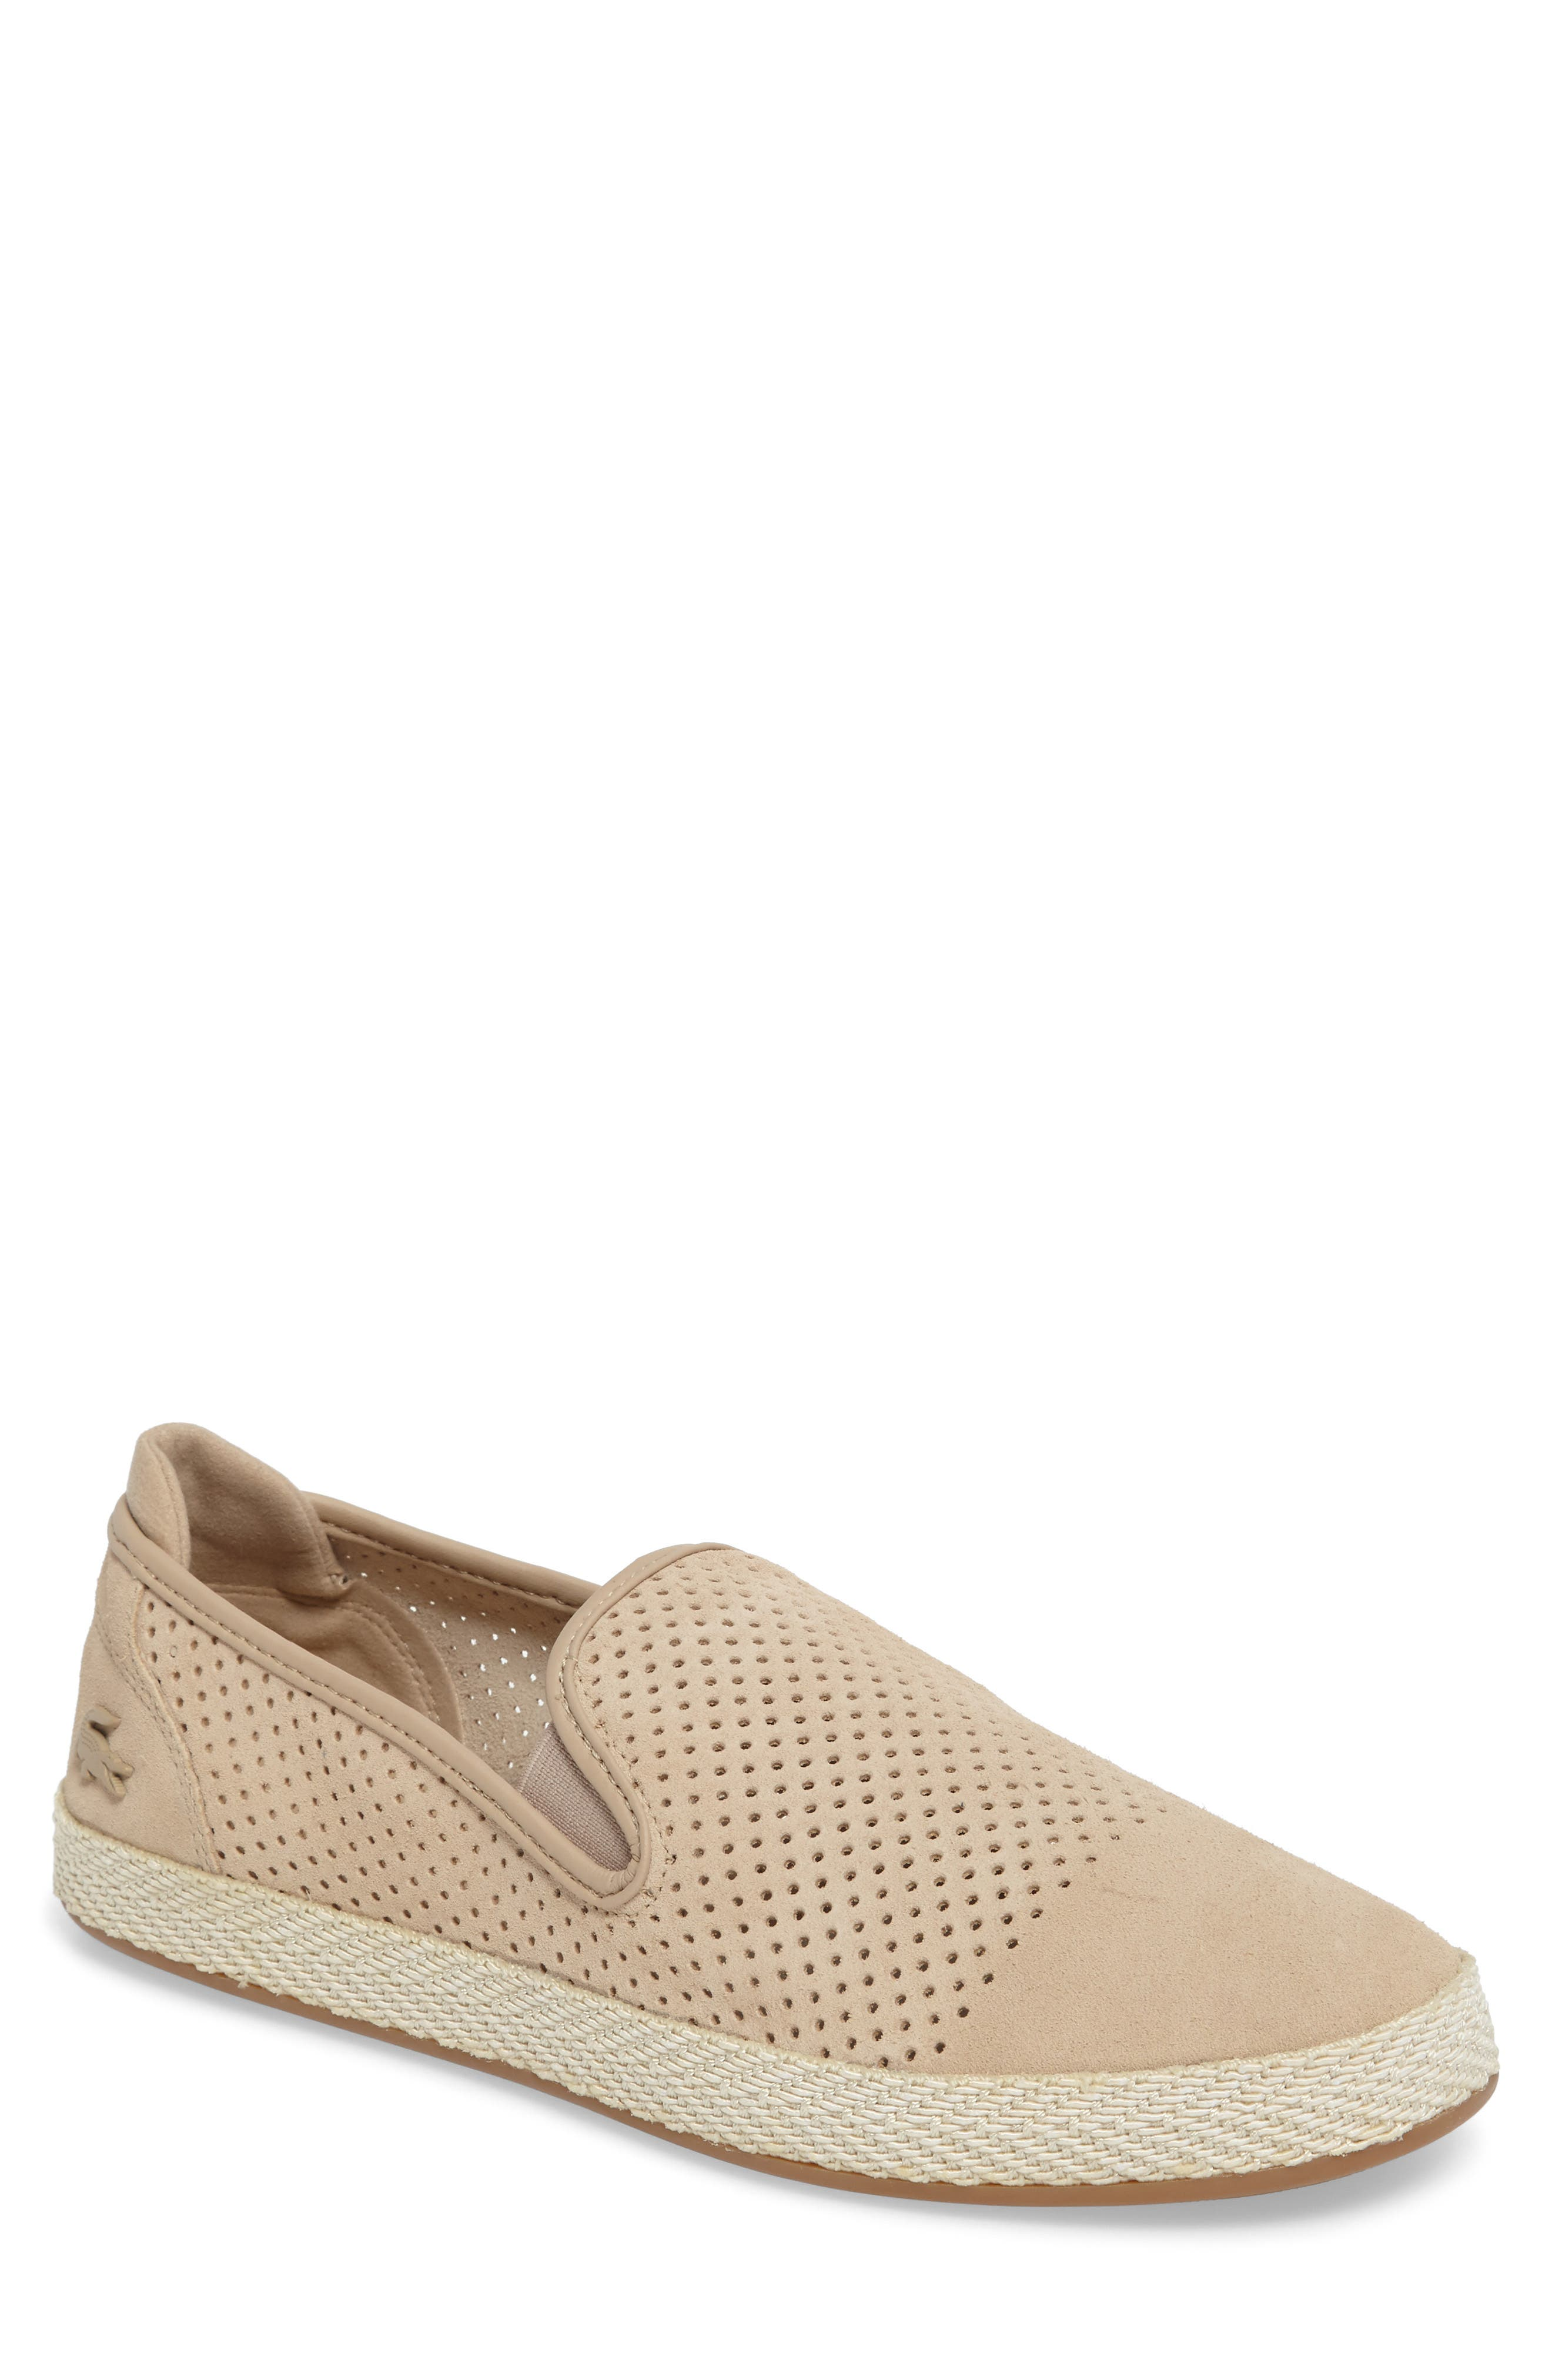 Tombre Slip-On,                         Main,                         color, Natural Suede